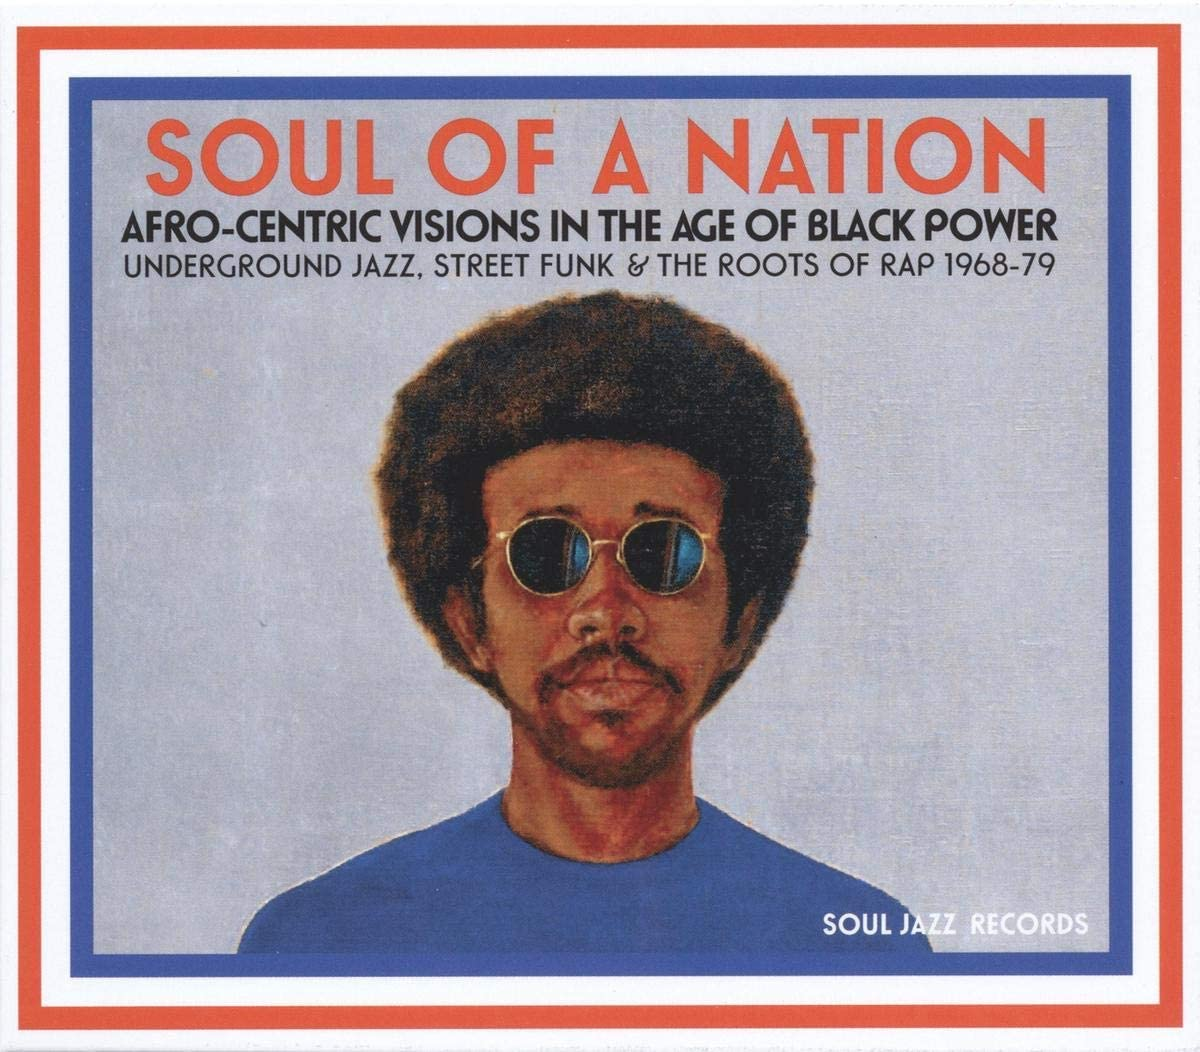 Image of Soul of a Nation